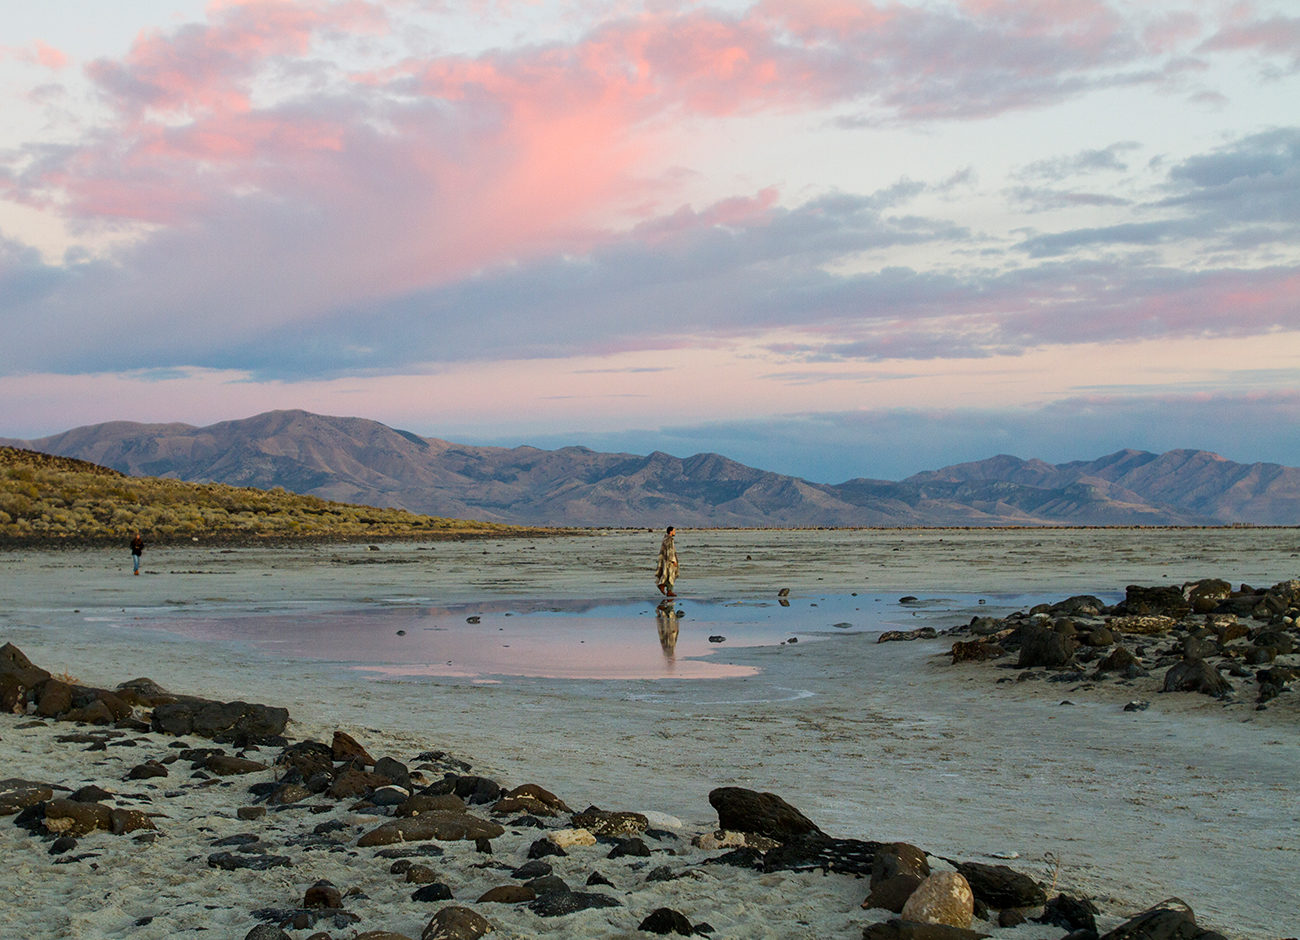 A man walks on the dry lakebed of the Great Salt Lake at sunset.